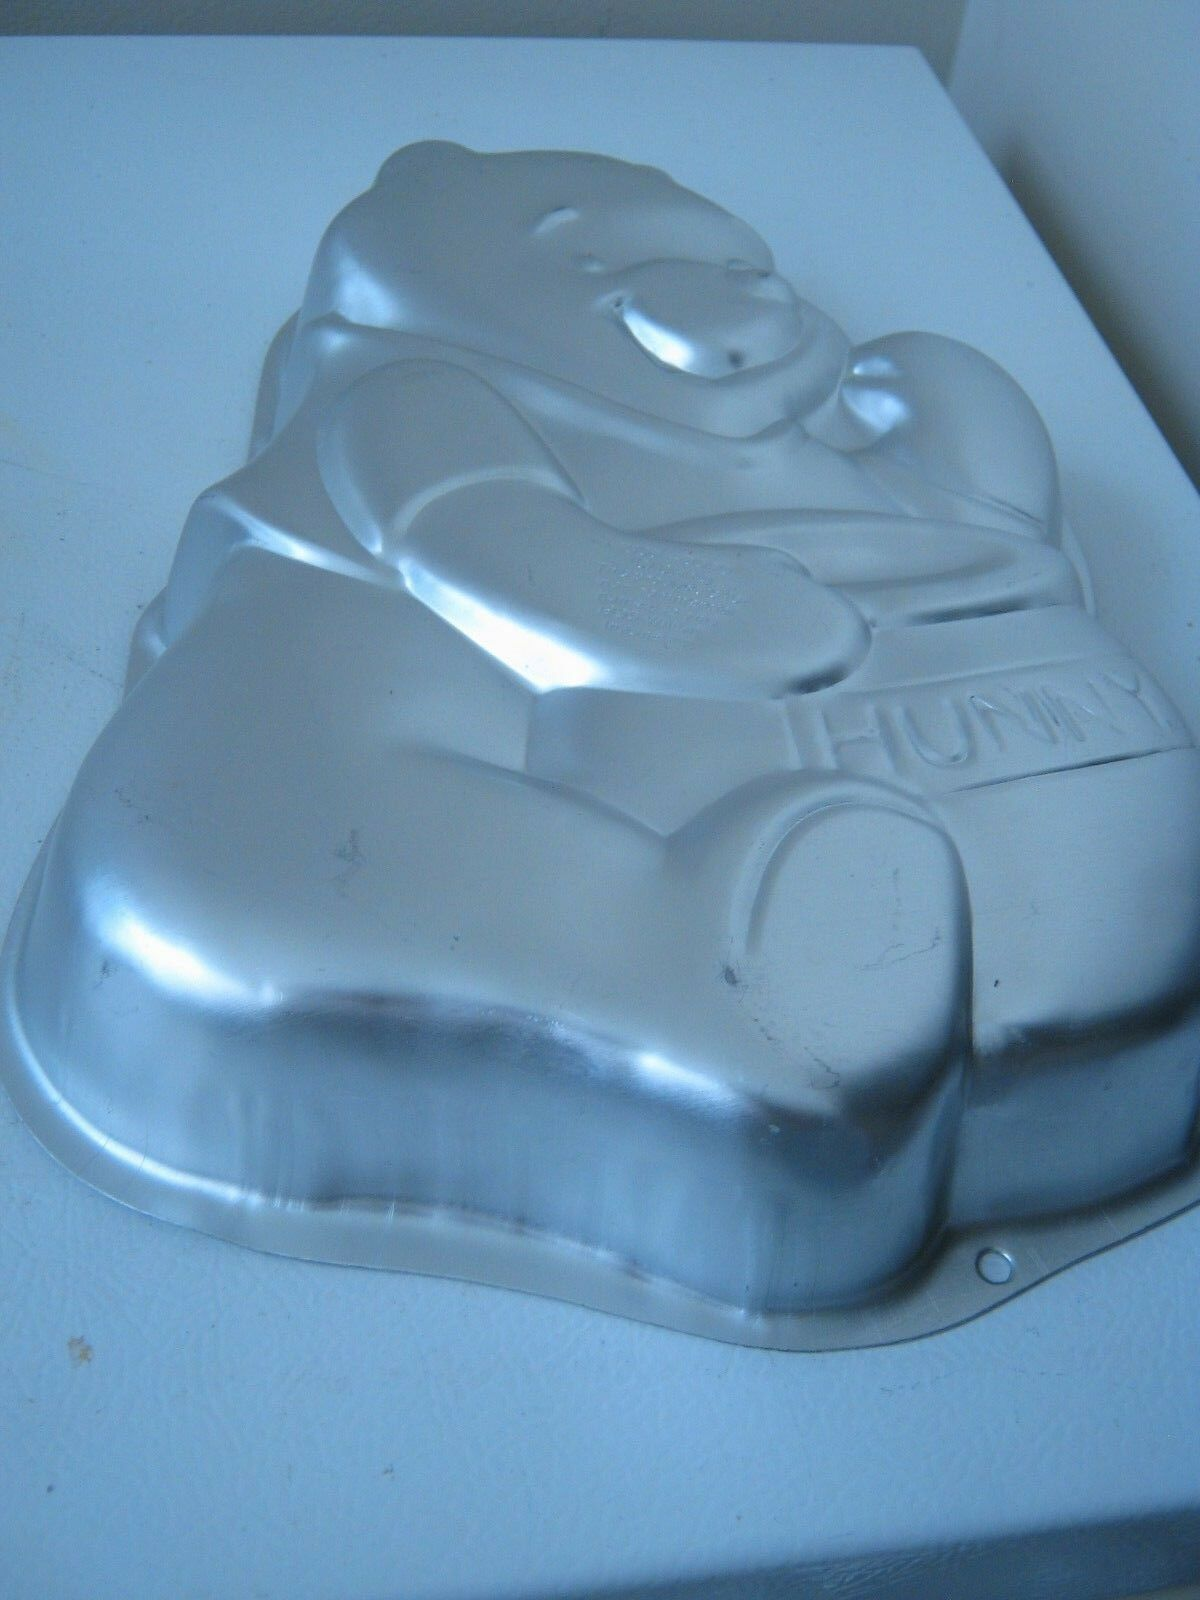 Primary image for Wilton Disney Winnie the Pooh and Hunny Pot Cake Pan 2105-3000